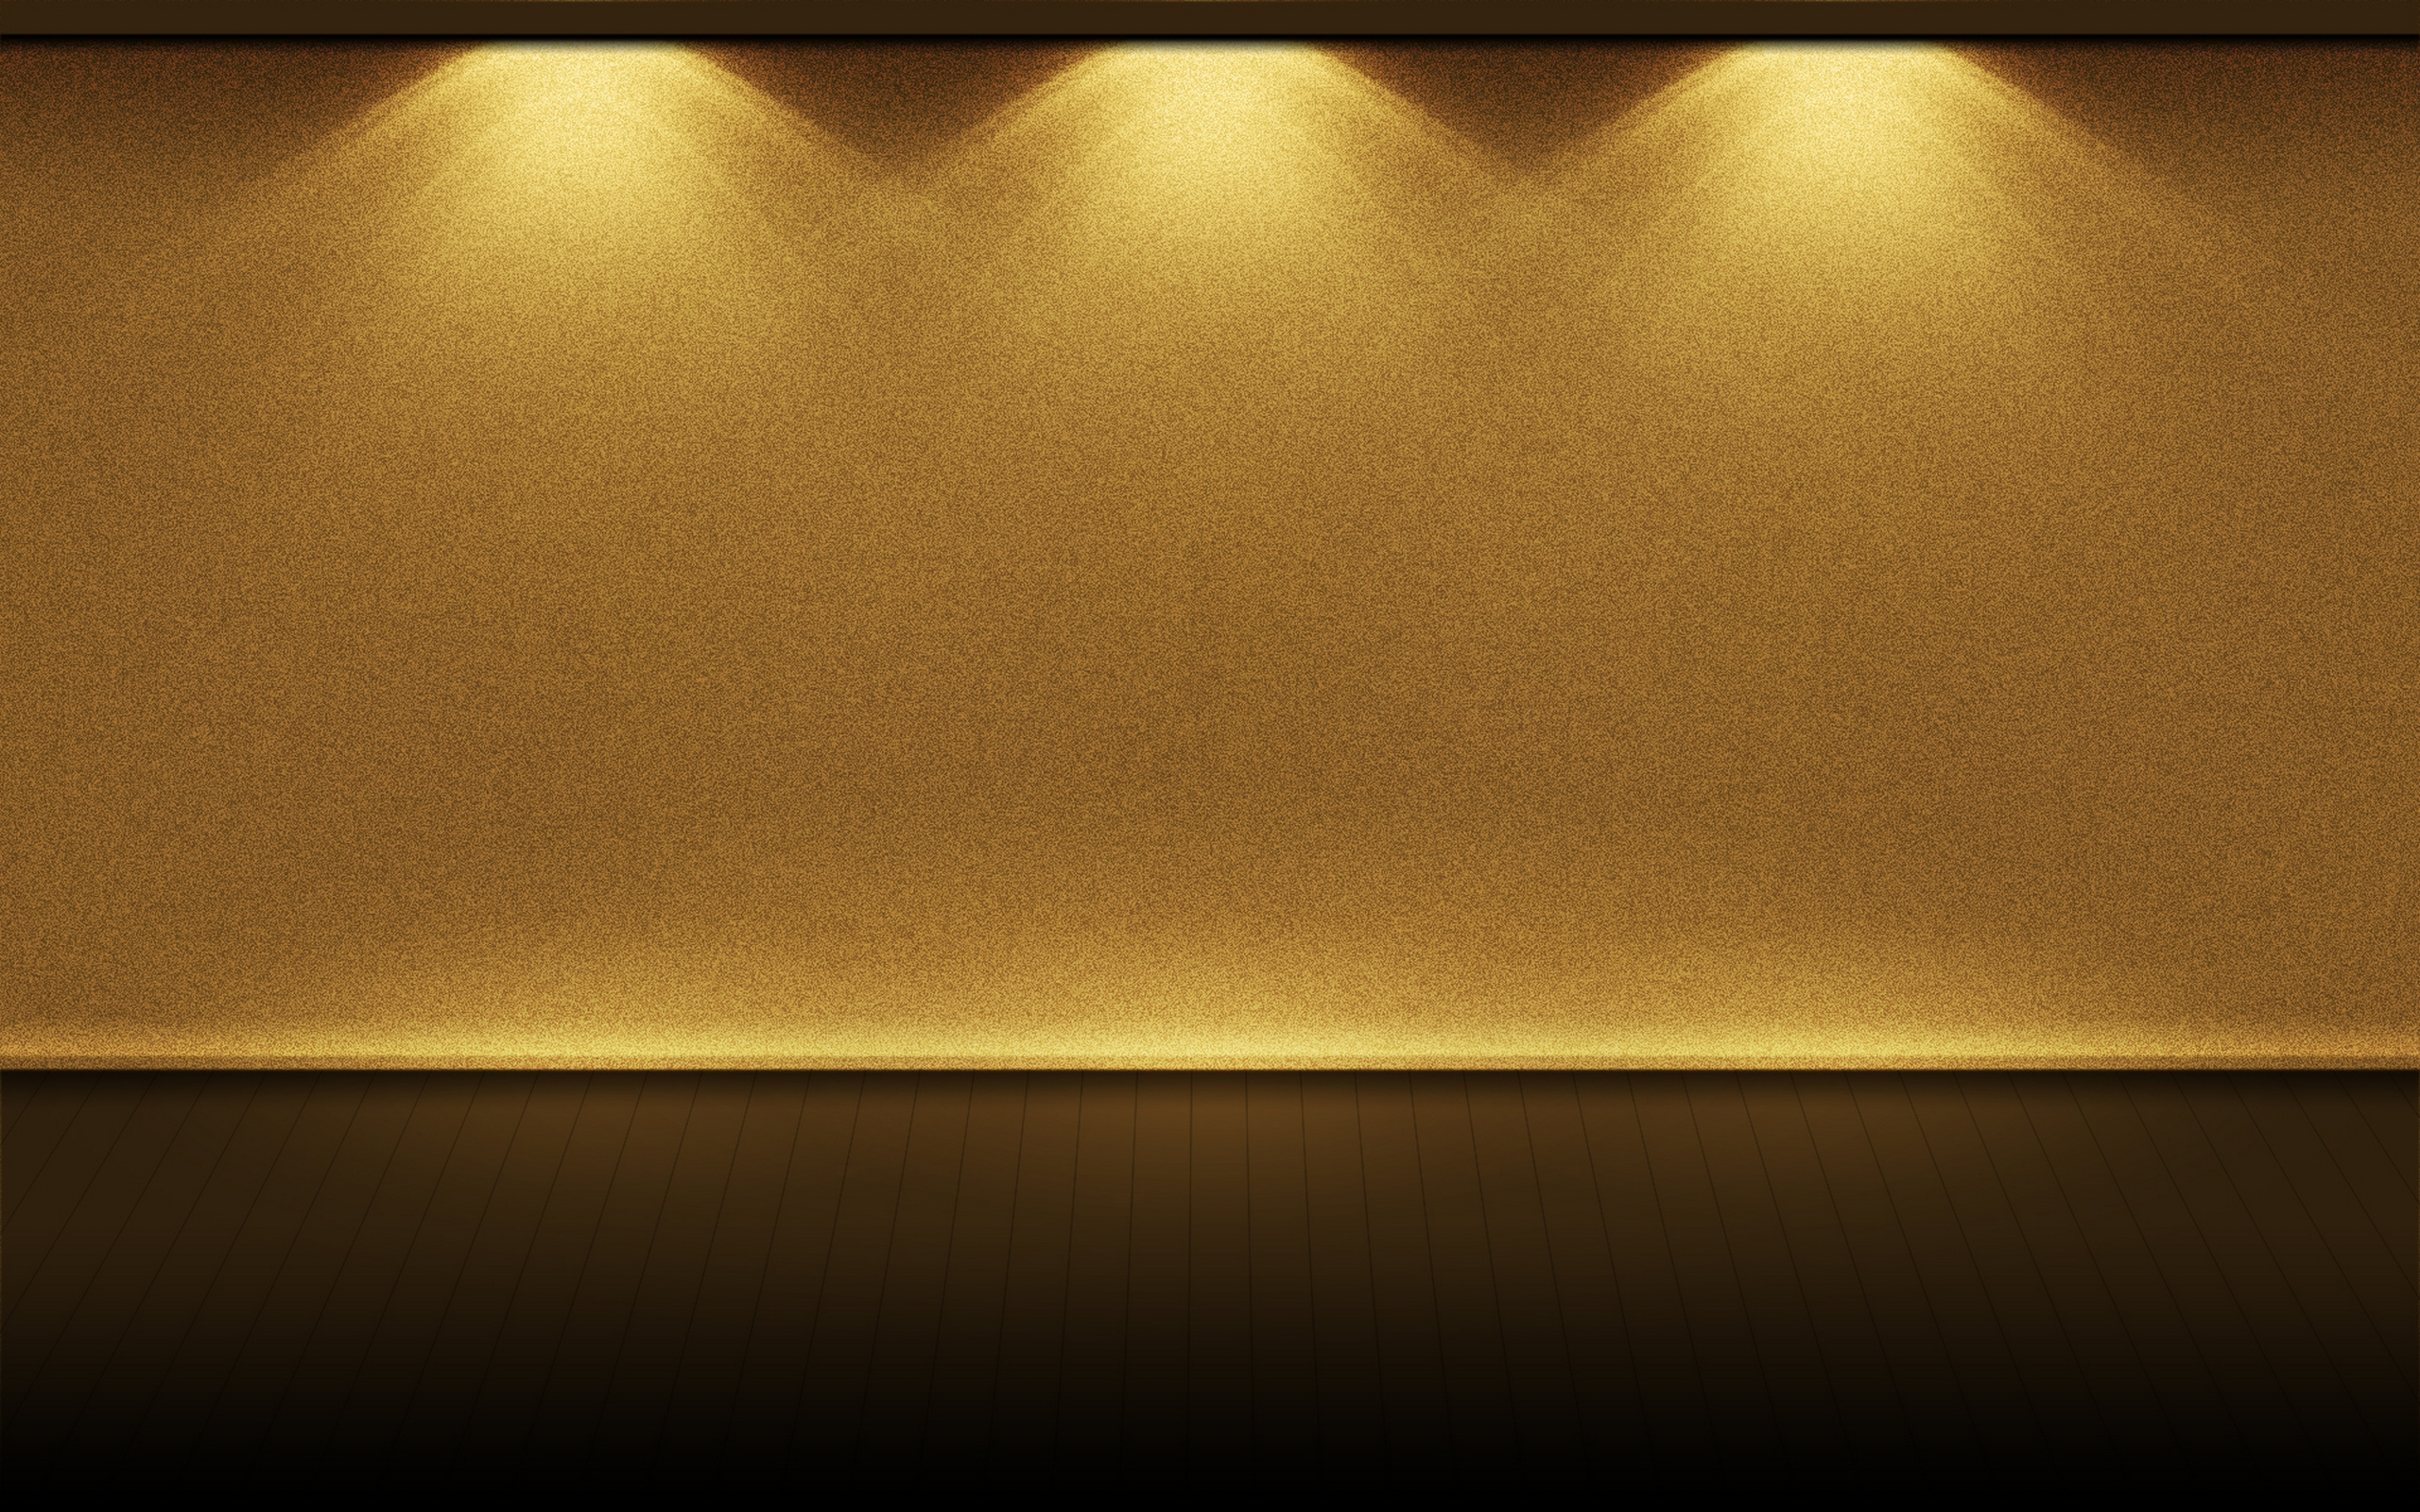 1 Gold Lights Hd Wallpapers Backgrounds Wallpaper Abyss